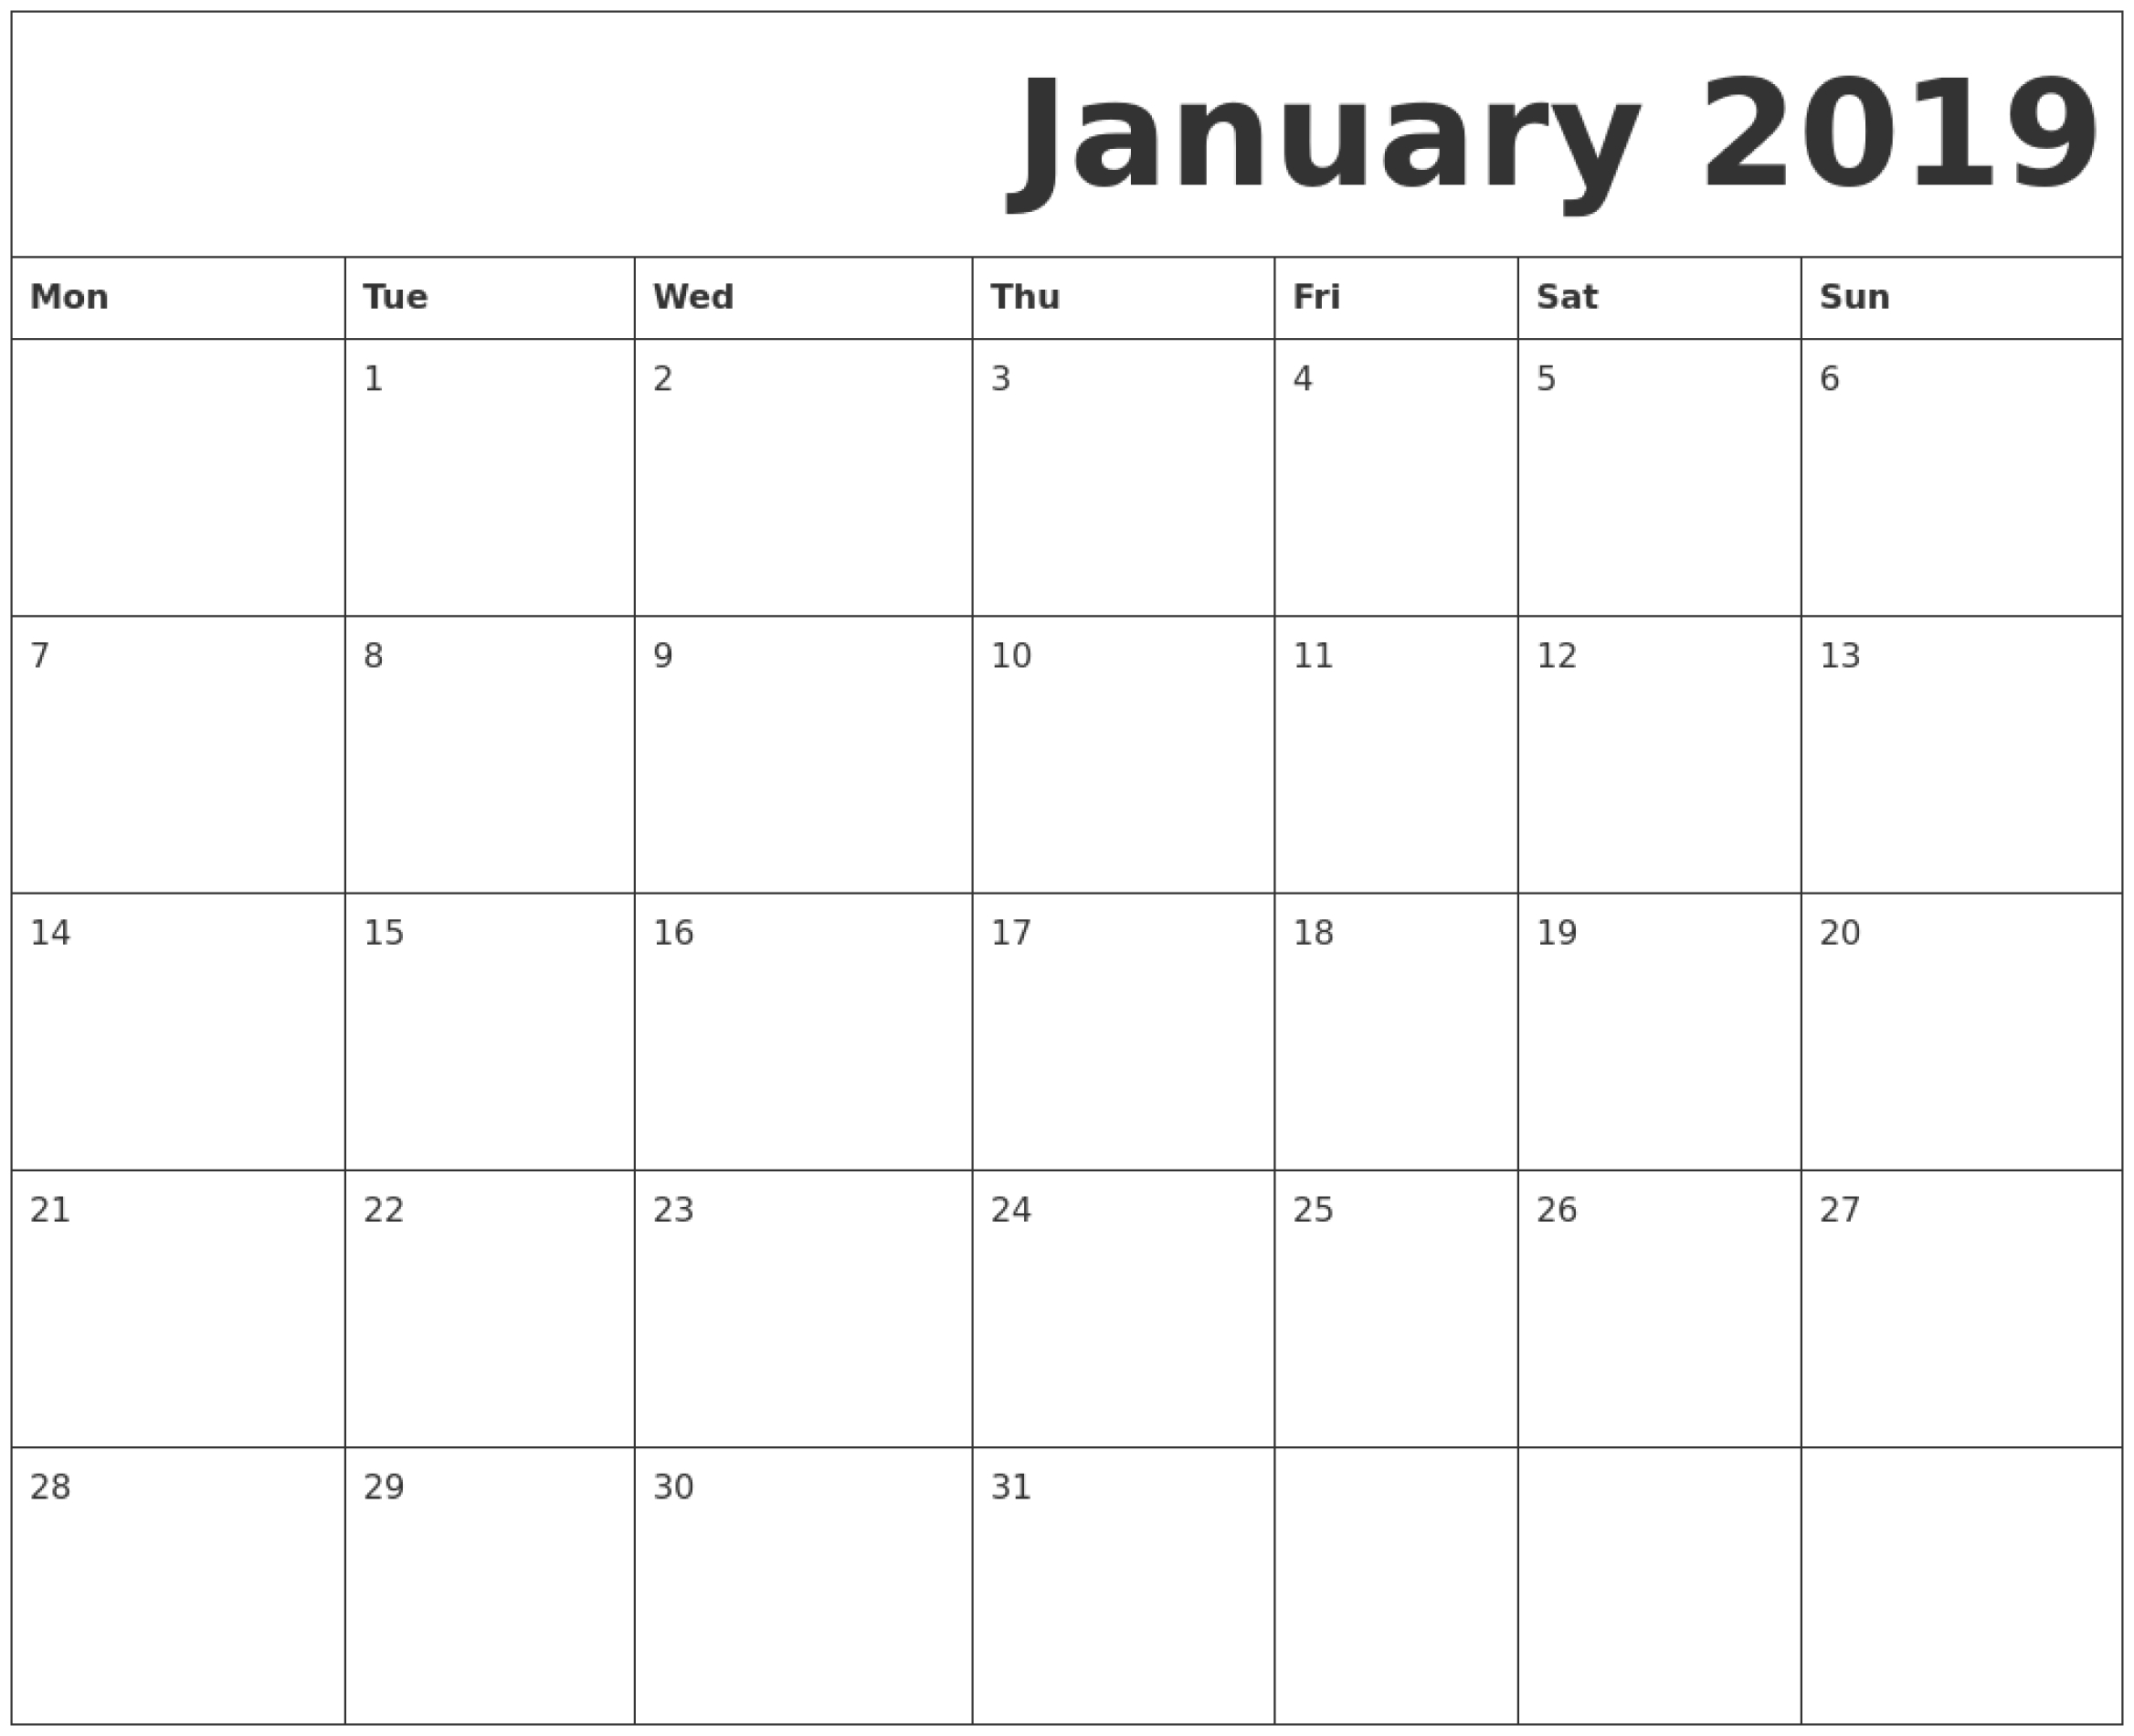 January 2019 Printable Calendar Monday Start. | January 2019